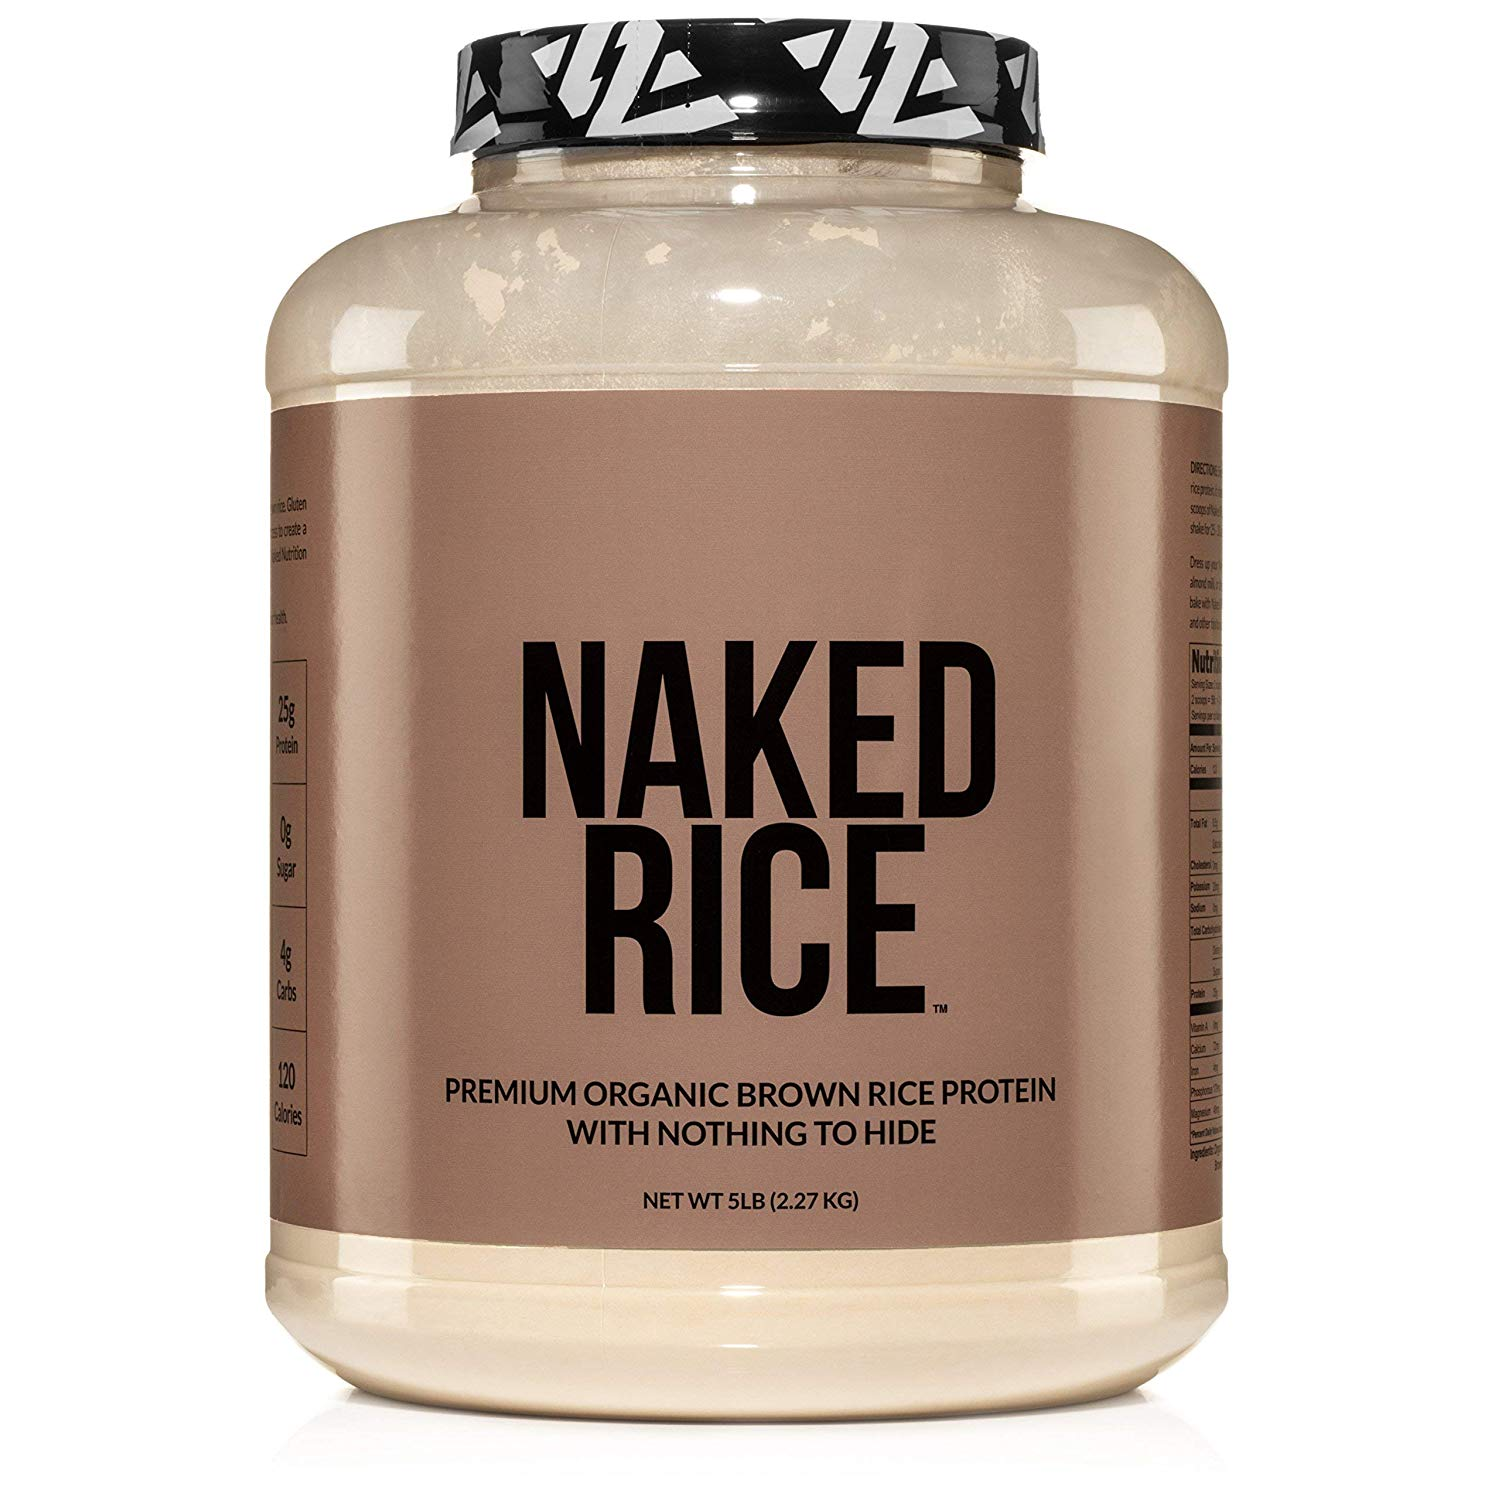 NAKED RICE Organic Brown Rice Protein Powder